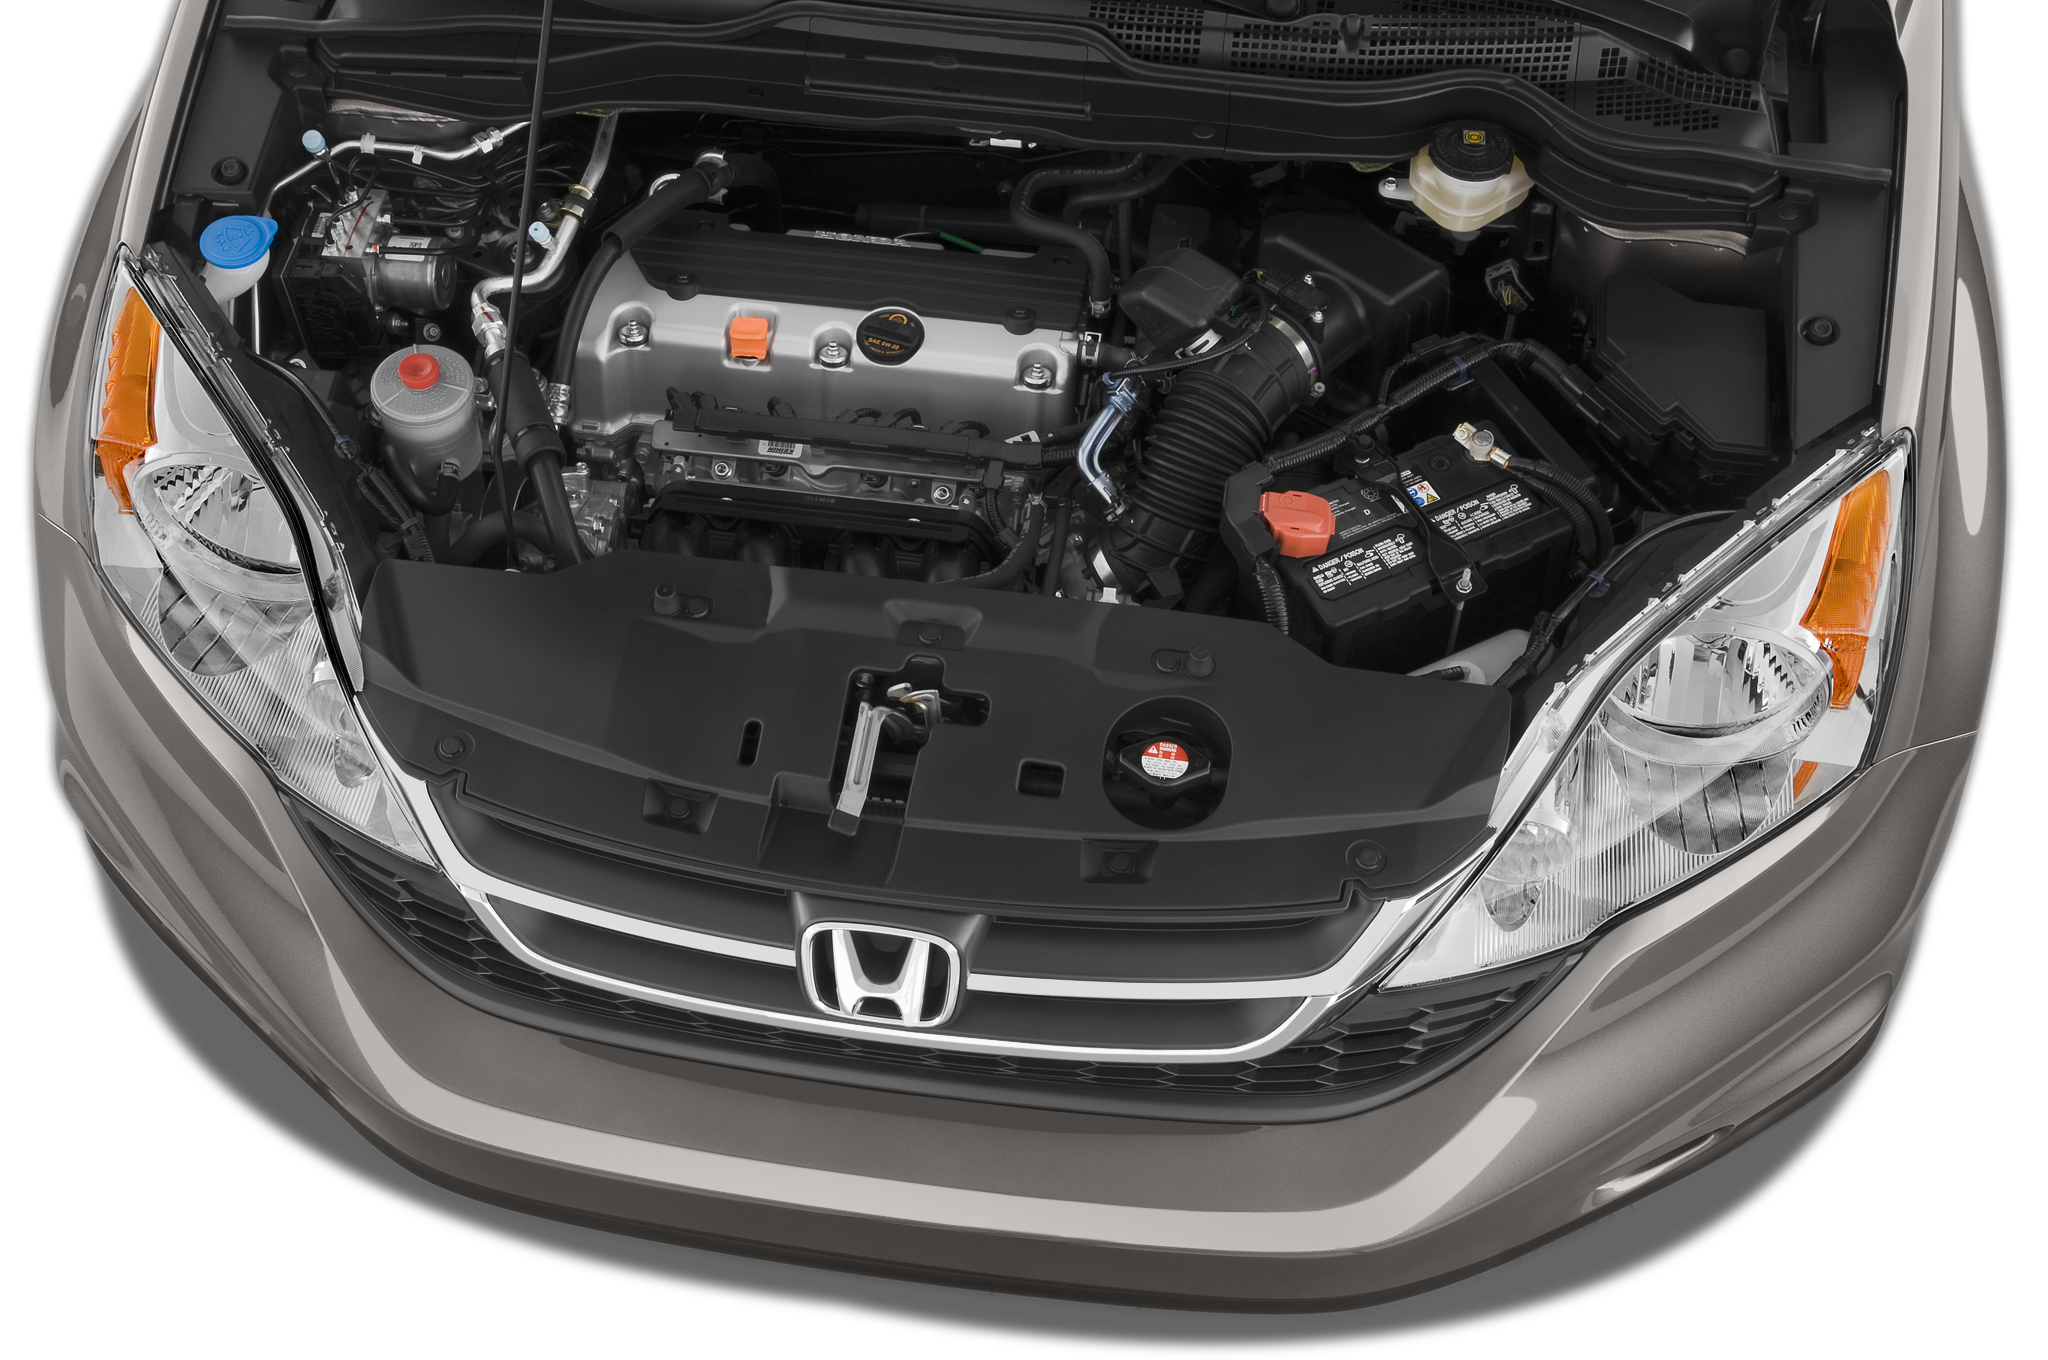 2010 Honda Cr V Ex L 4wd Honda Crossover Suv Review Automobile Magazine